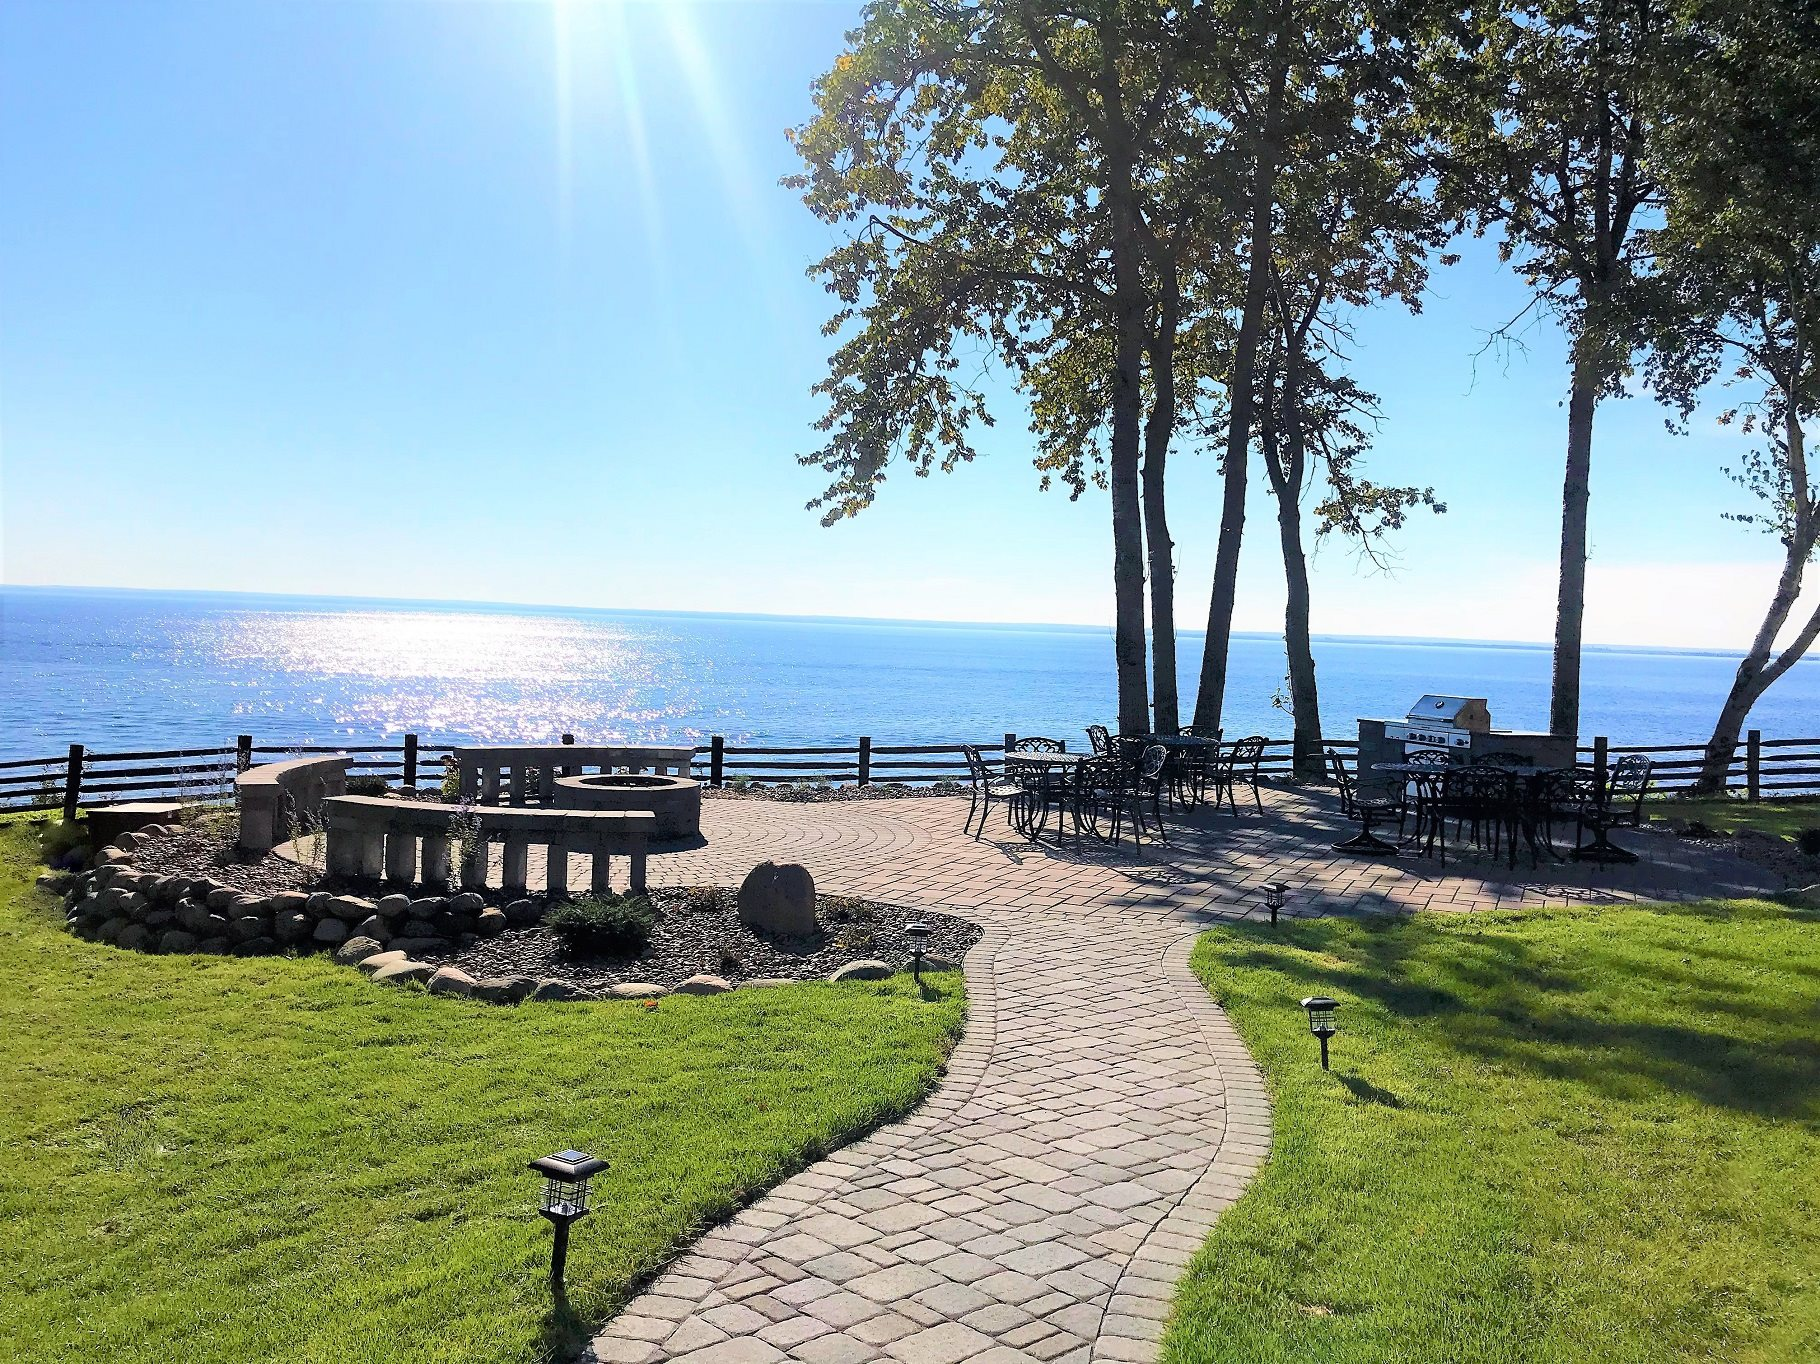 New Patio looking out over Lake Superior at Les Chateaux Apartments in Duluth Minnesota